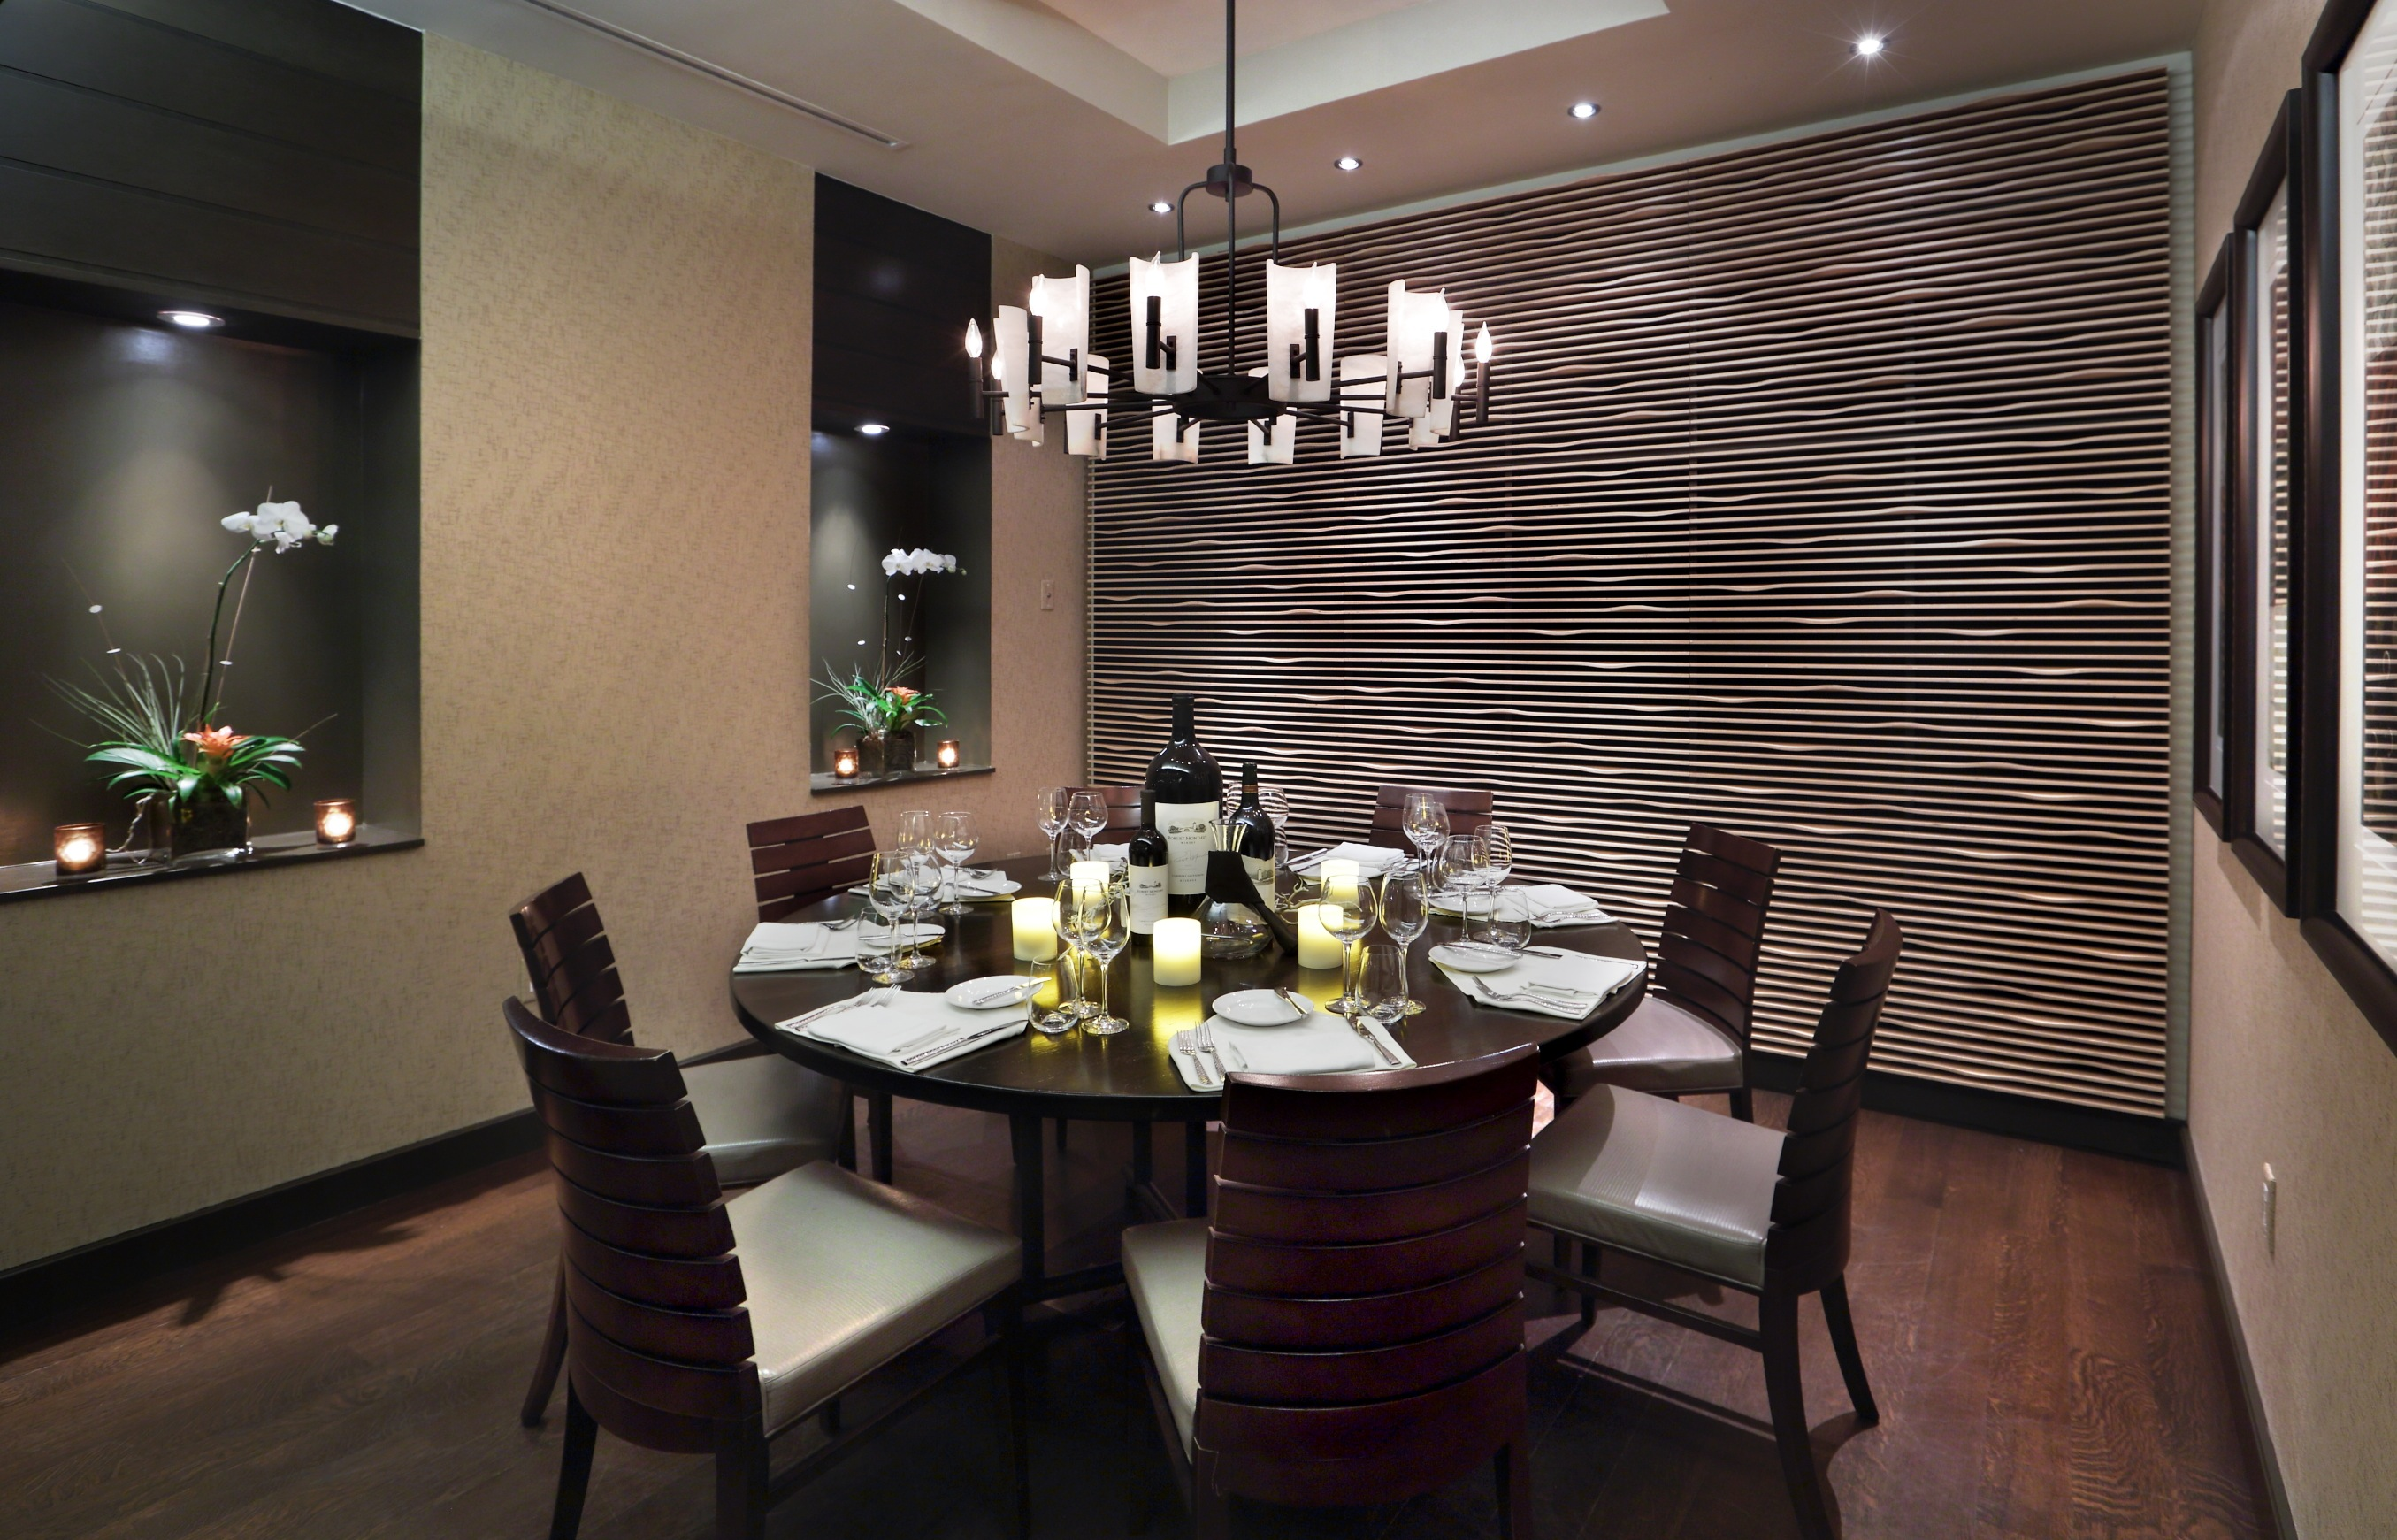 Featured Image of Glass Dining Room Pendant Light For Round Dining Room